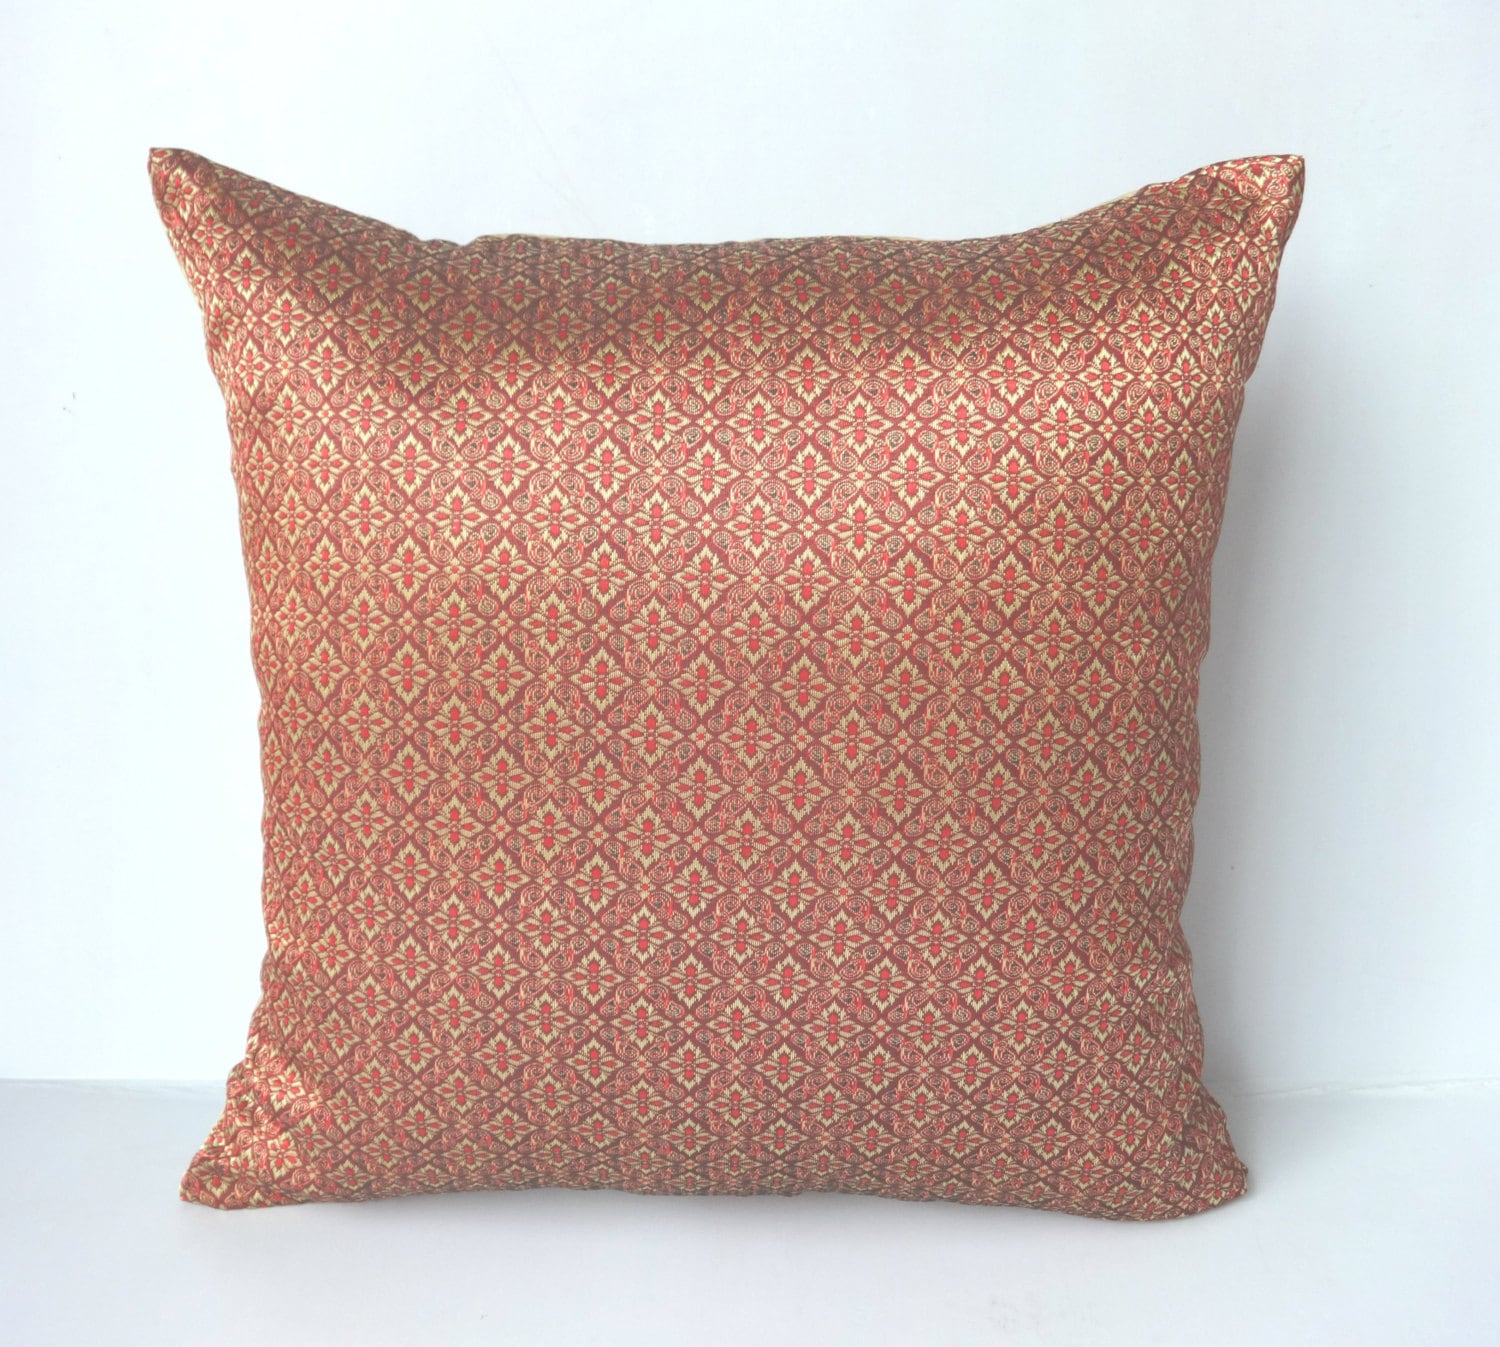 Maroon and gold Brocade Decorative Pillow Covers festive